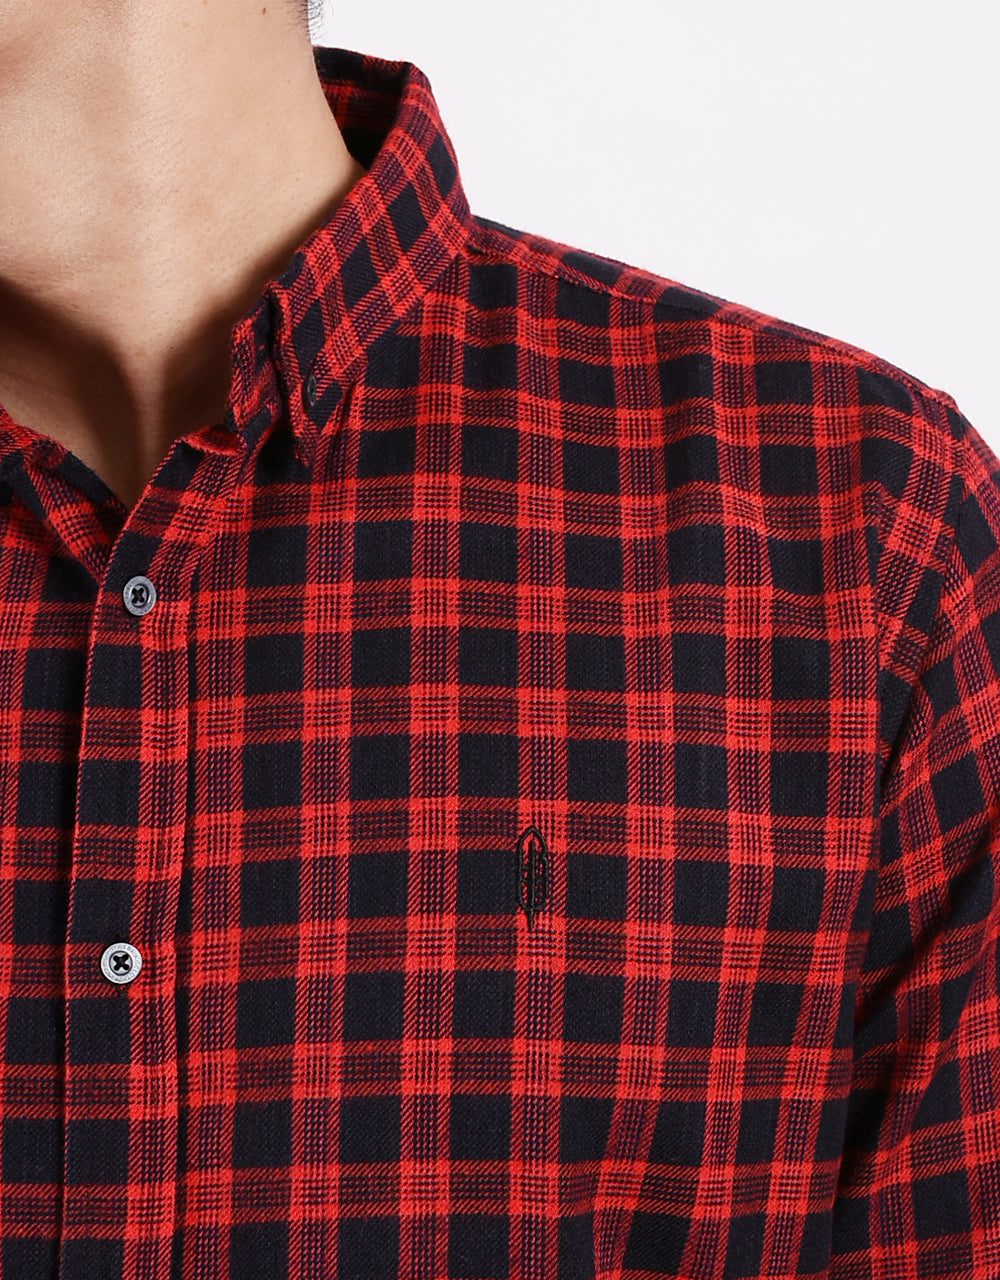 Decade Flannel Shirt